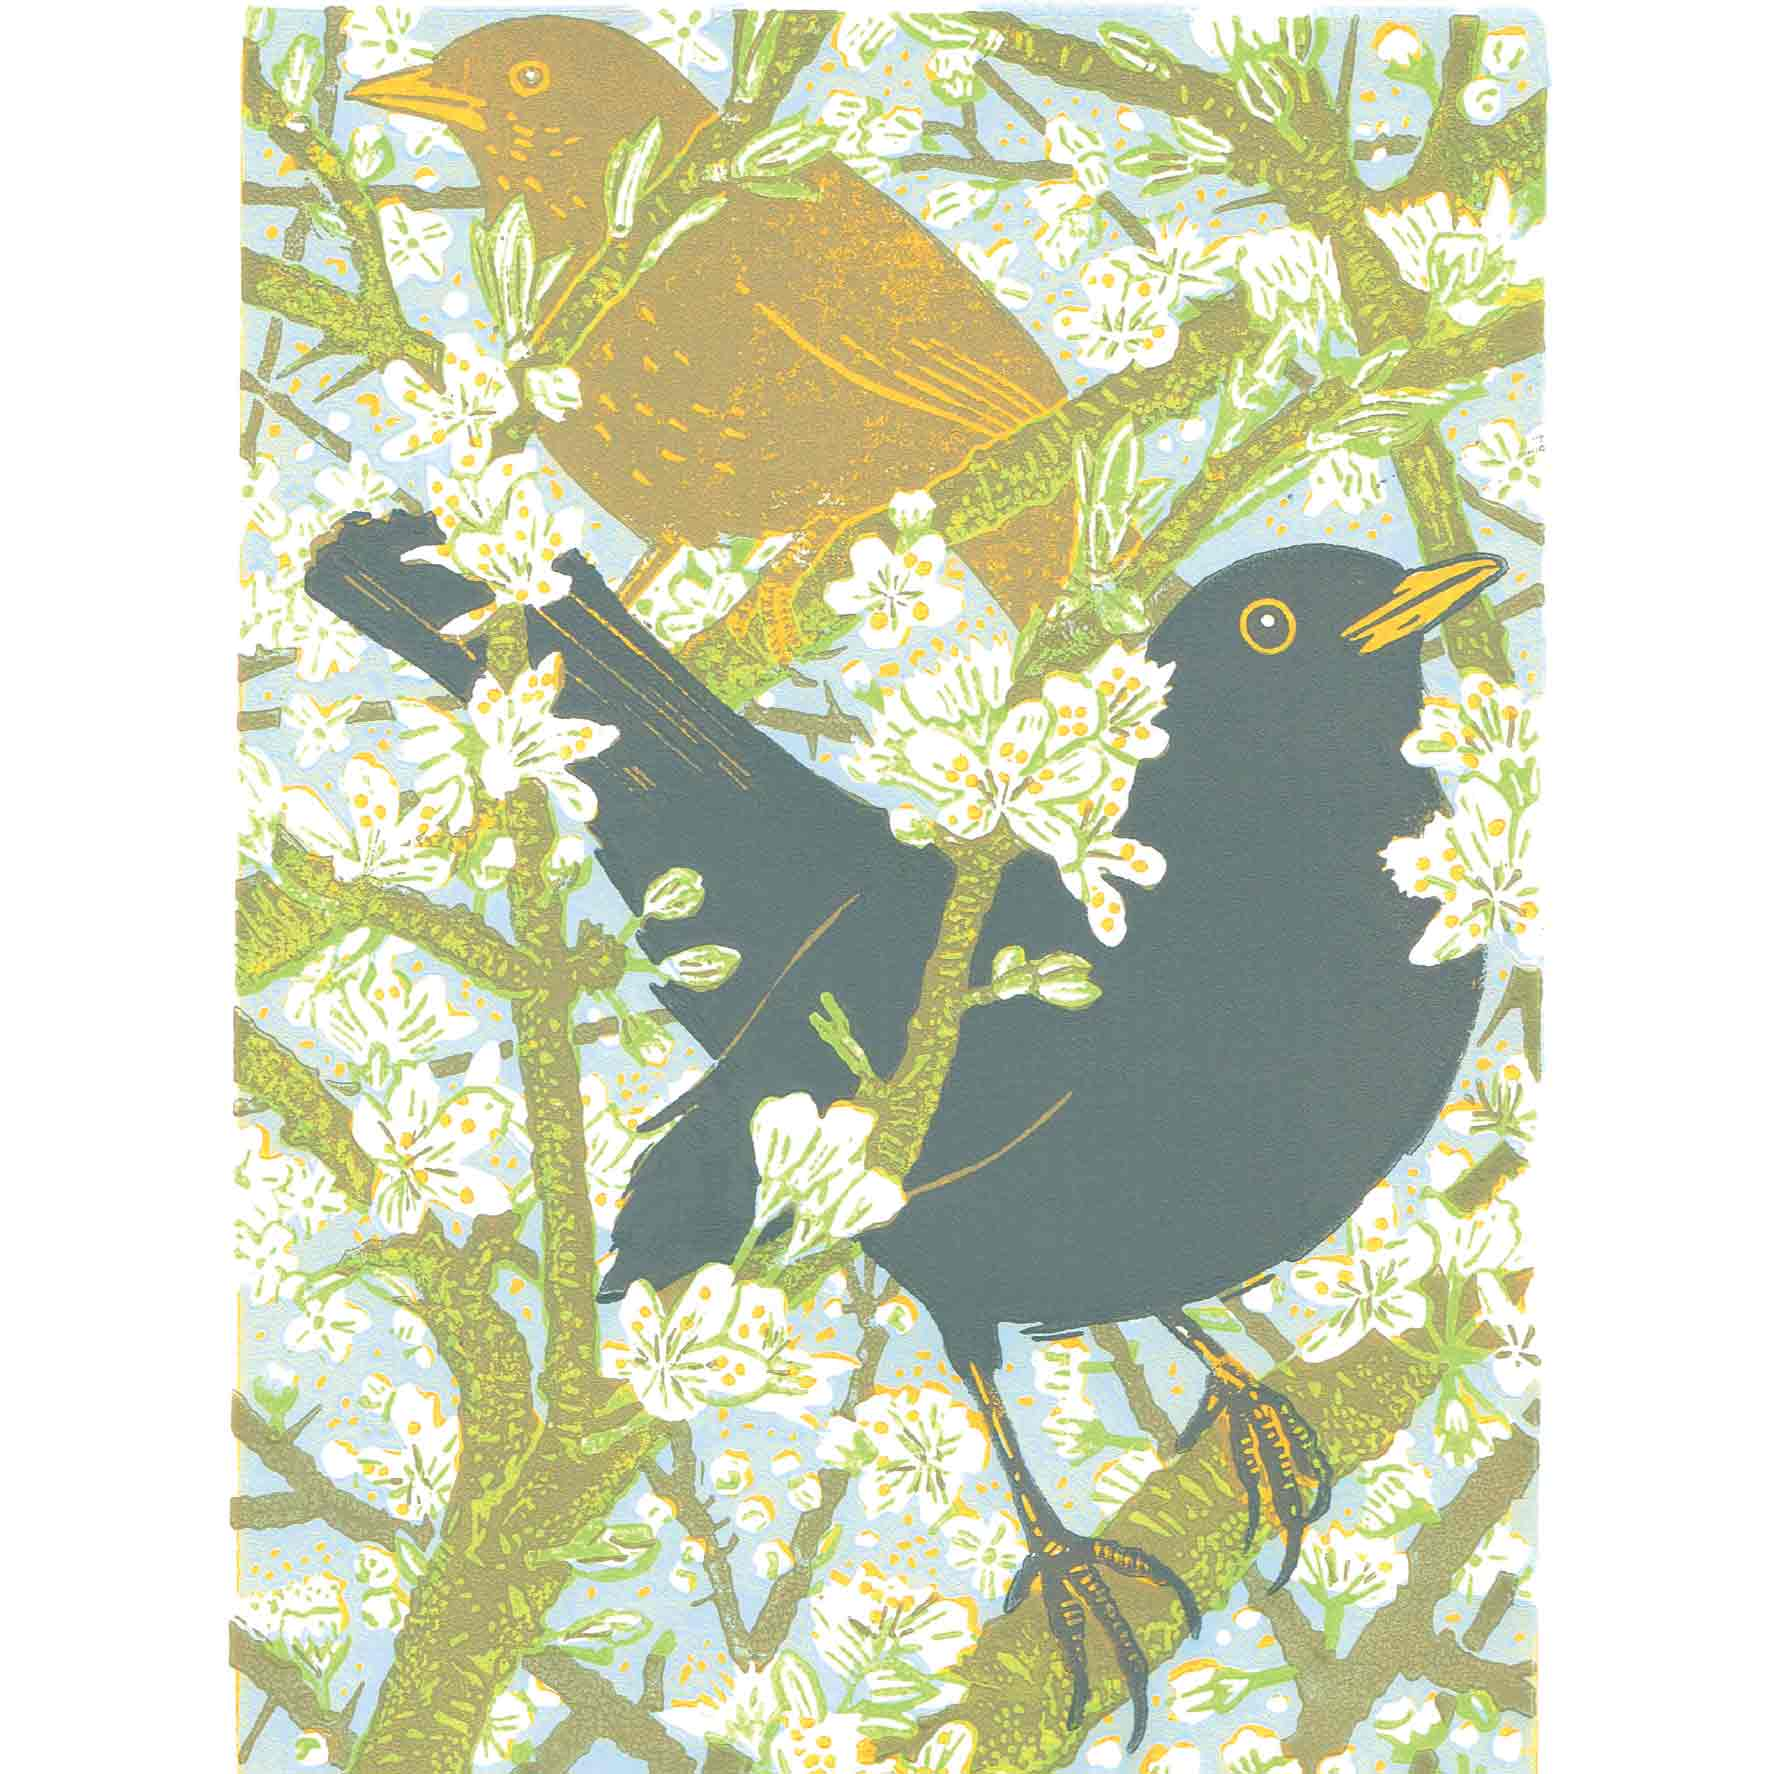 Art Greeting Card by Gary Ramskill, Blackthorn and Blackbirds, Two blackbirds in the blossom